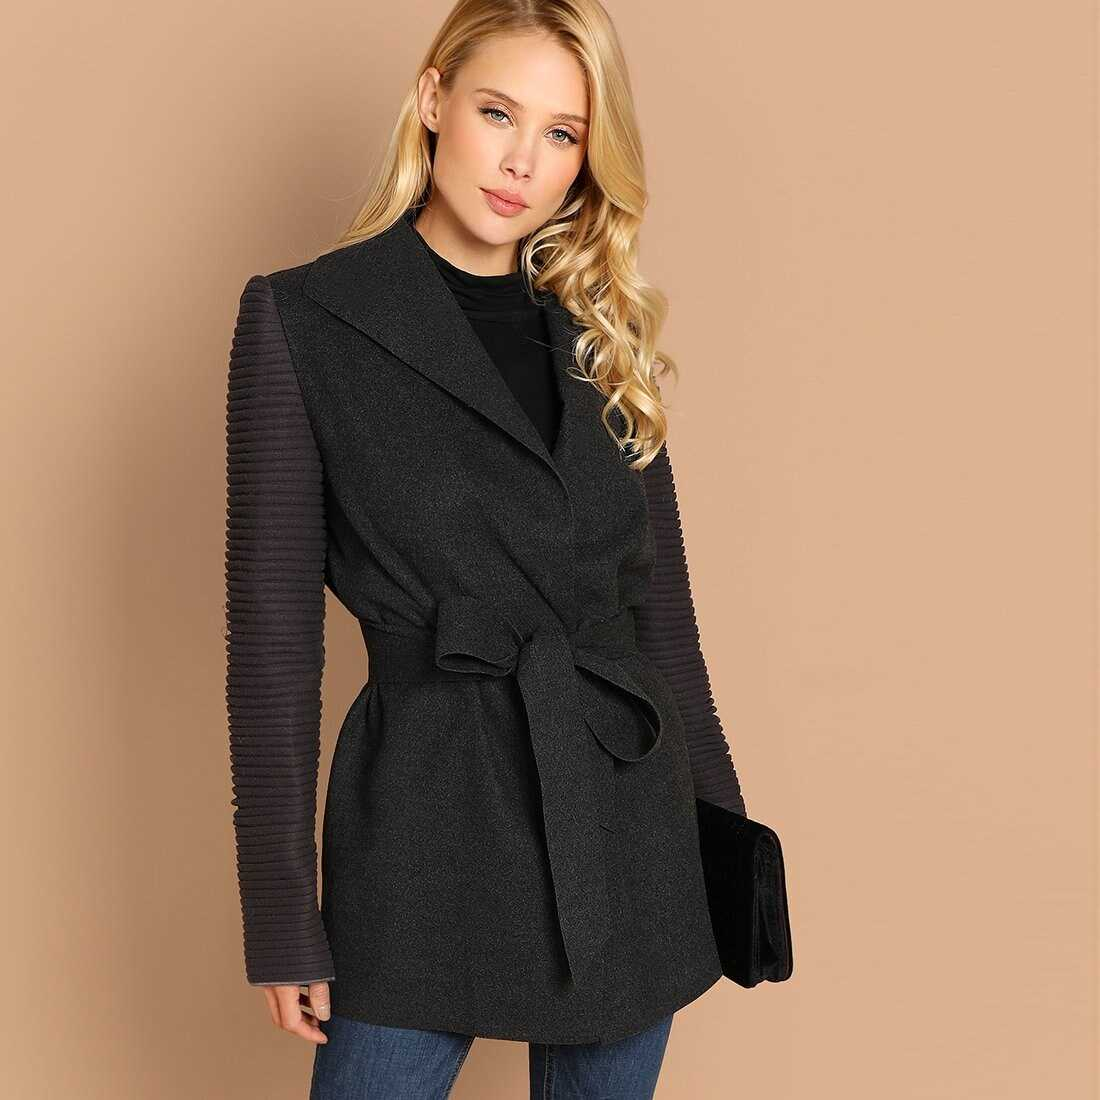 Quilted Sleeve Belted Coat - Shein - GOOFASH